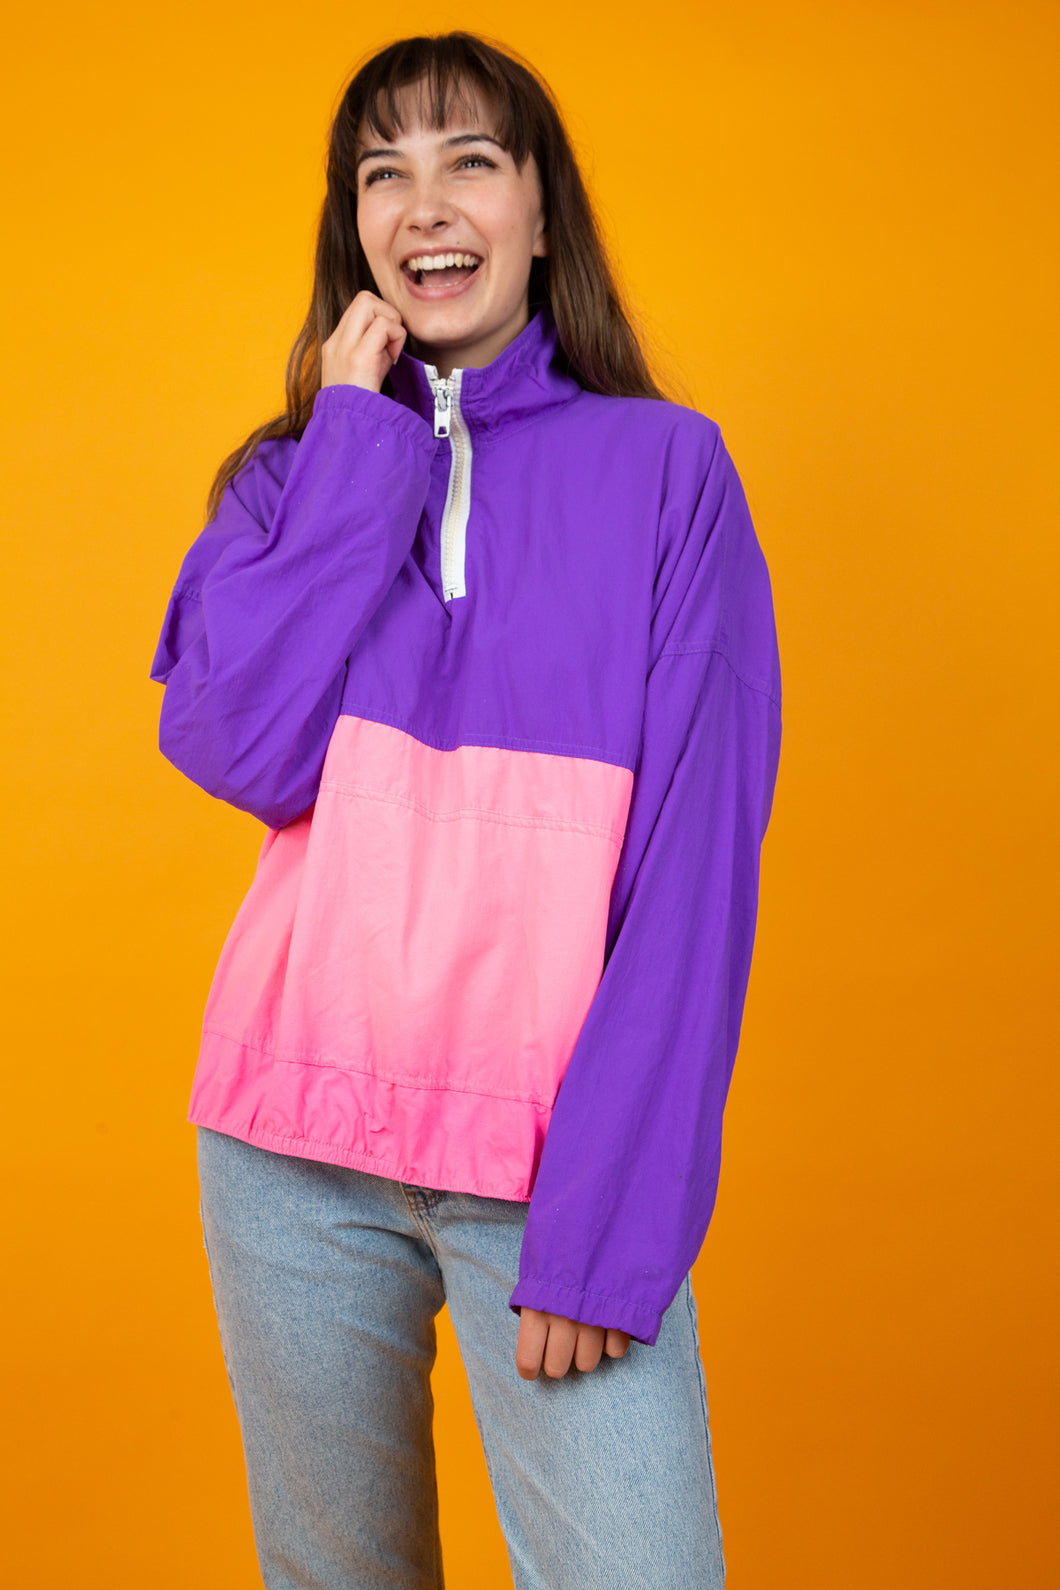 Retro Pink and Purple Runners Jacket from magichollow